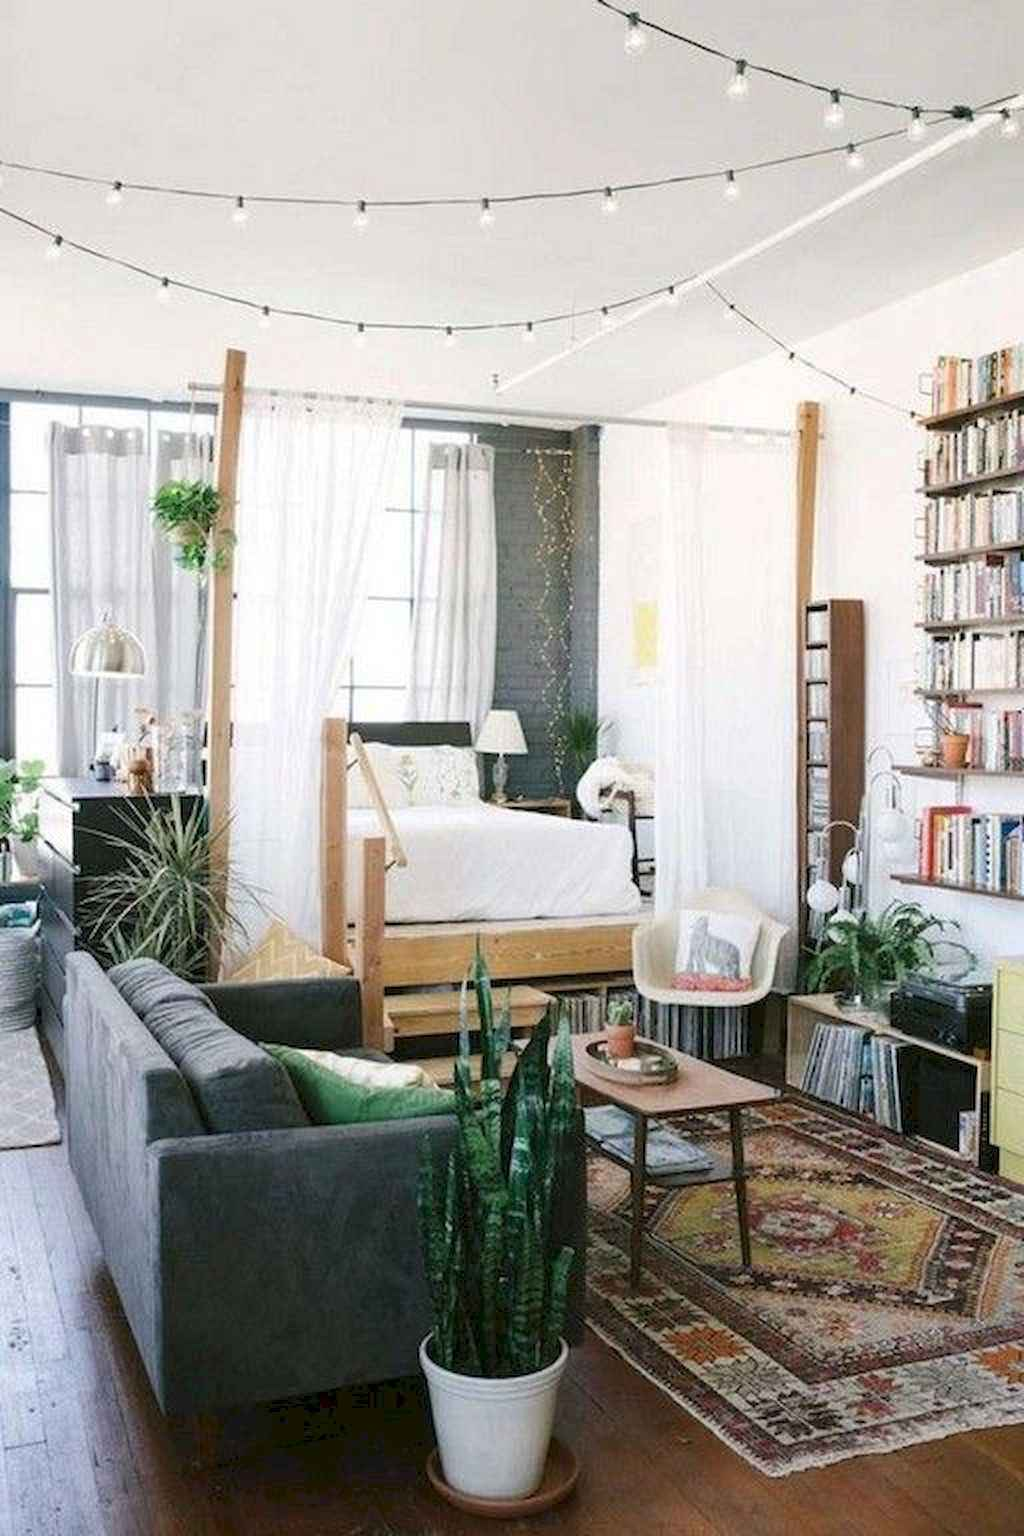 Cozy apartment decorating ideas on a budget (16)